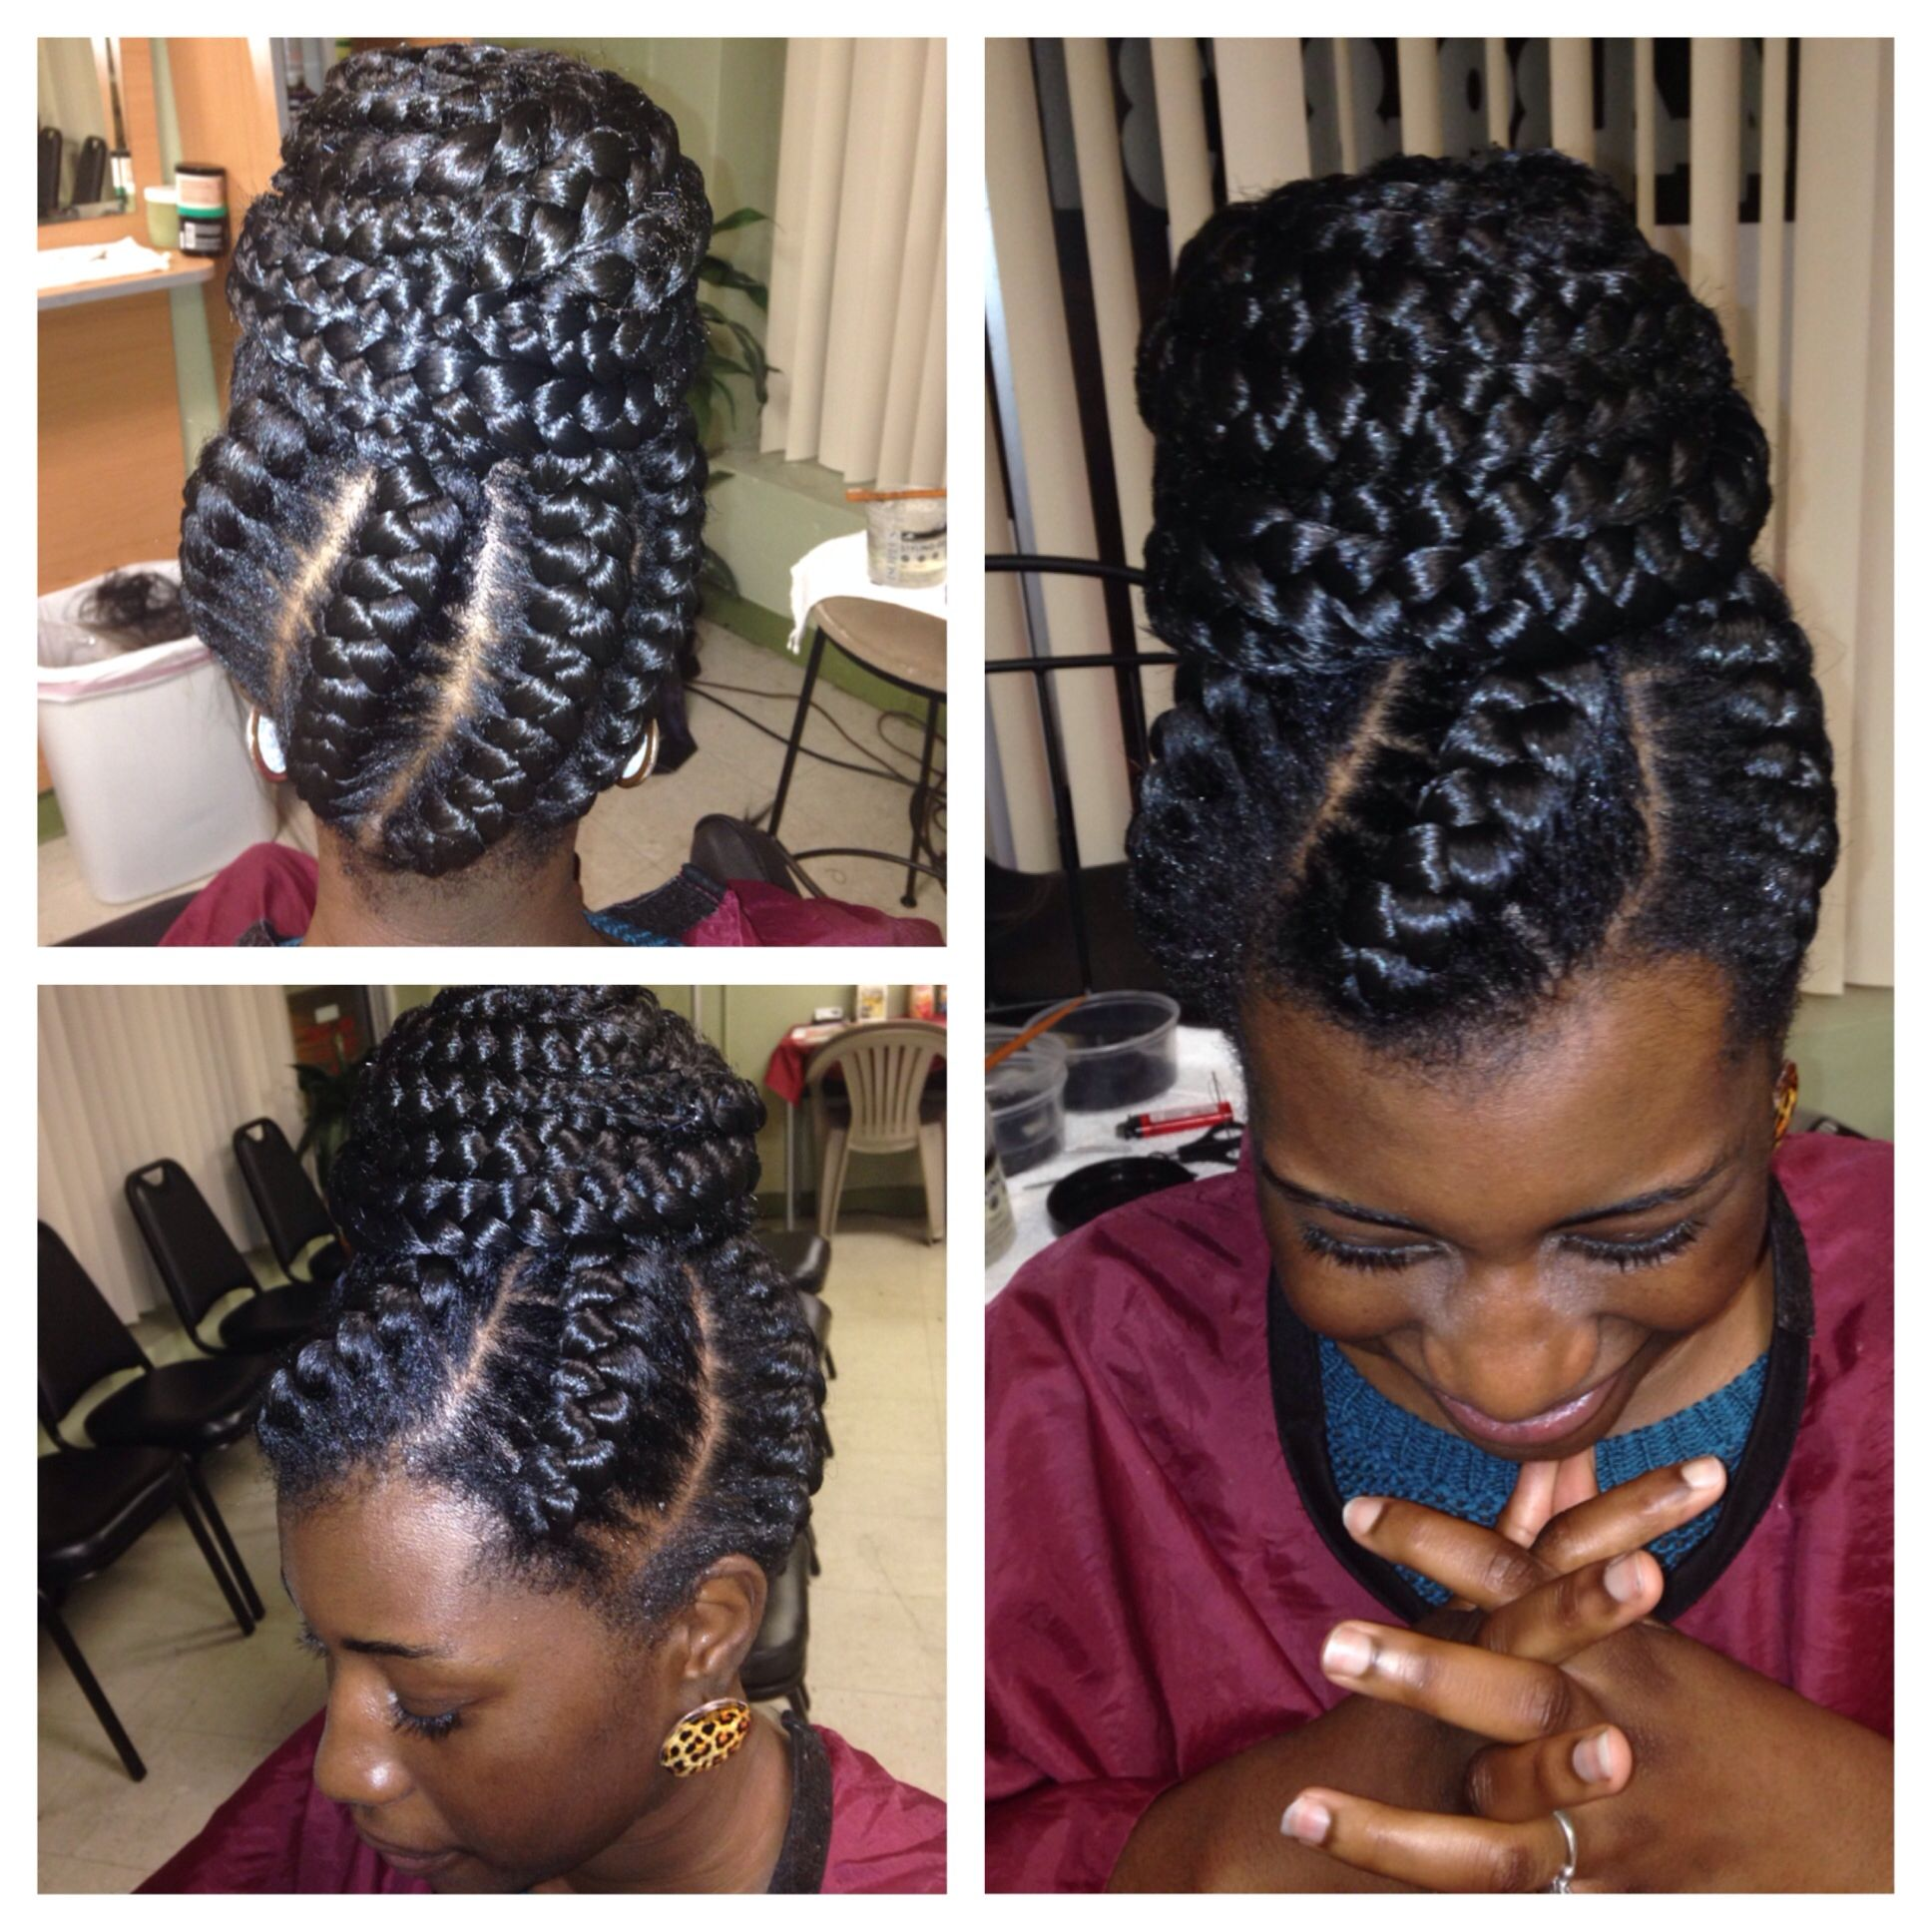 Big Cornrow Braids In A Buns Styles Protective Hairstyles Hair Styles Goddess Braids Braided Hairstyles